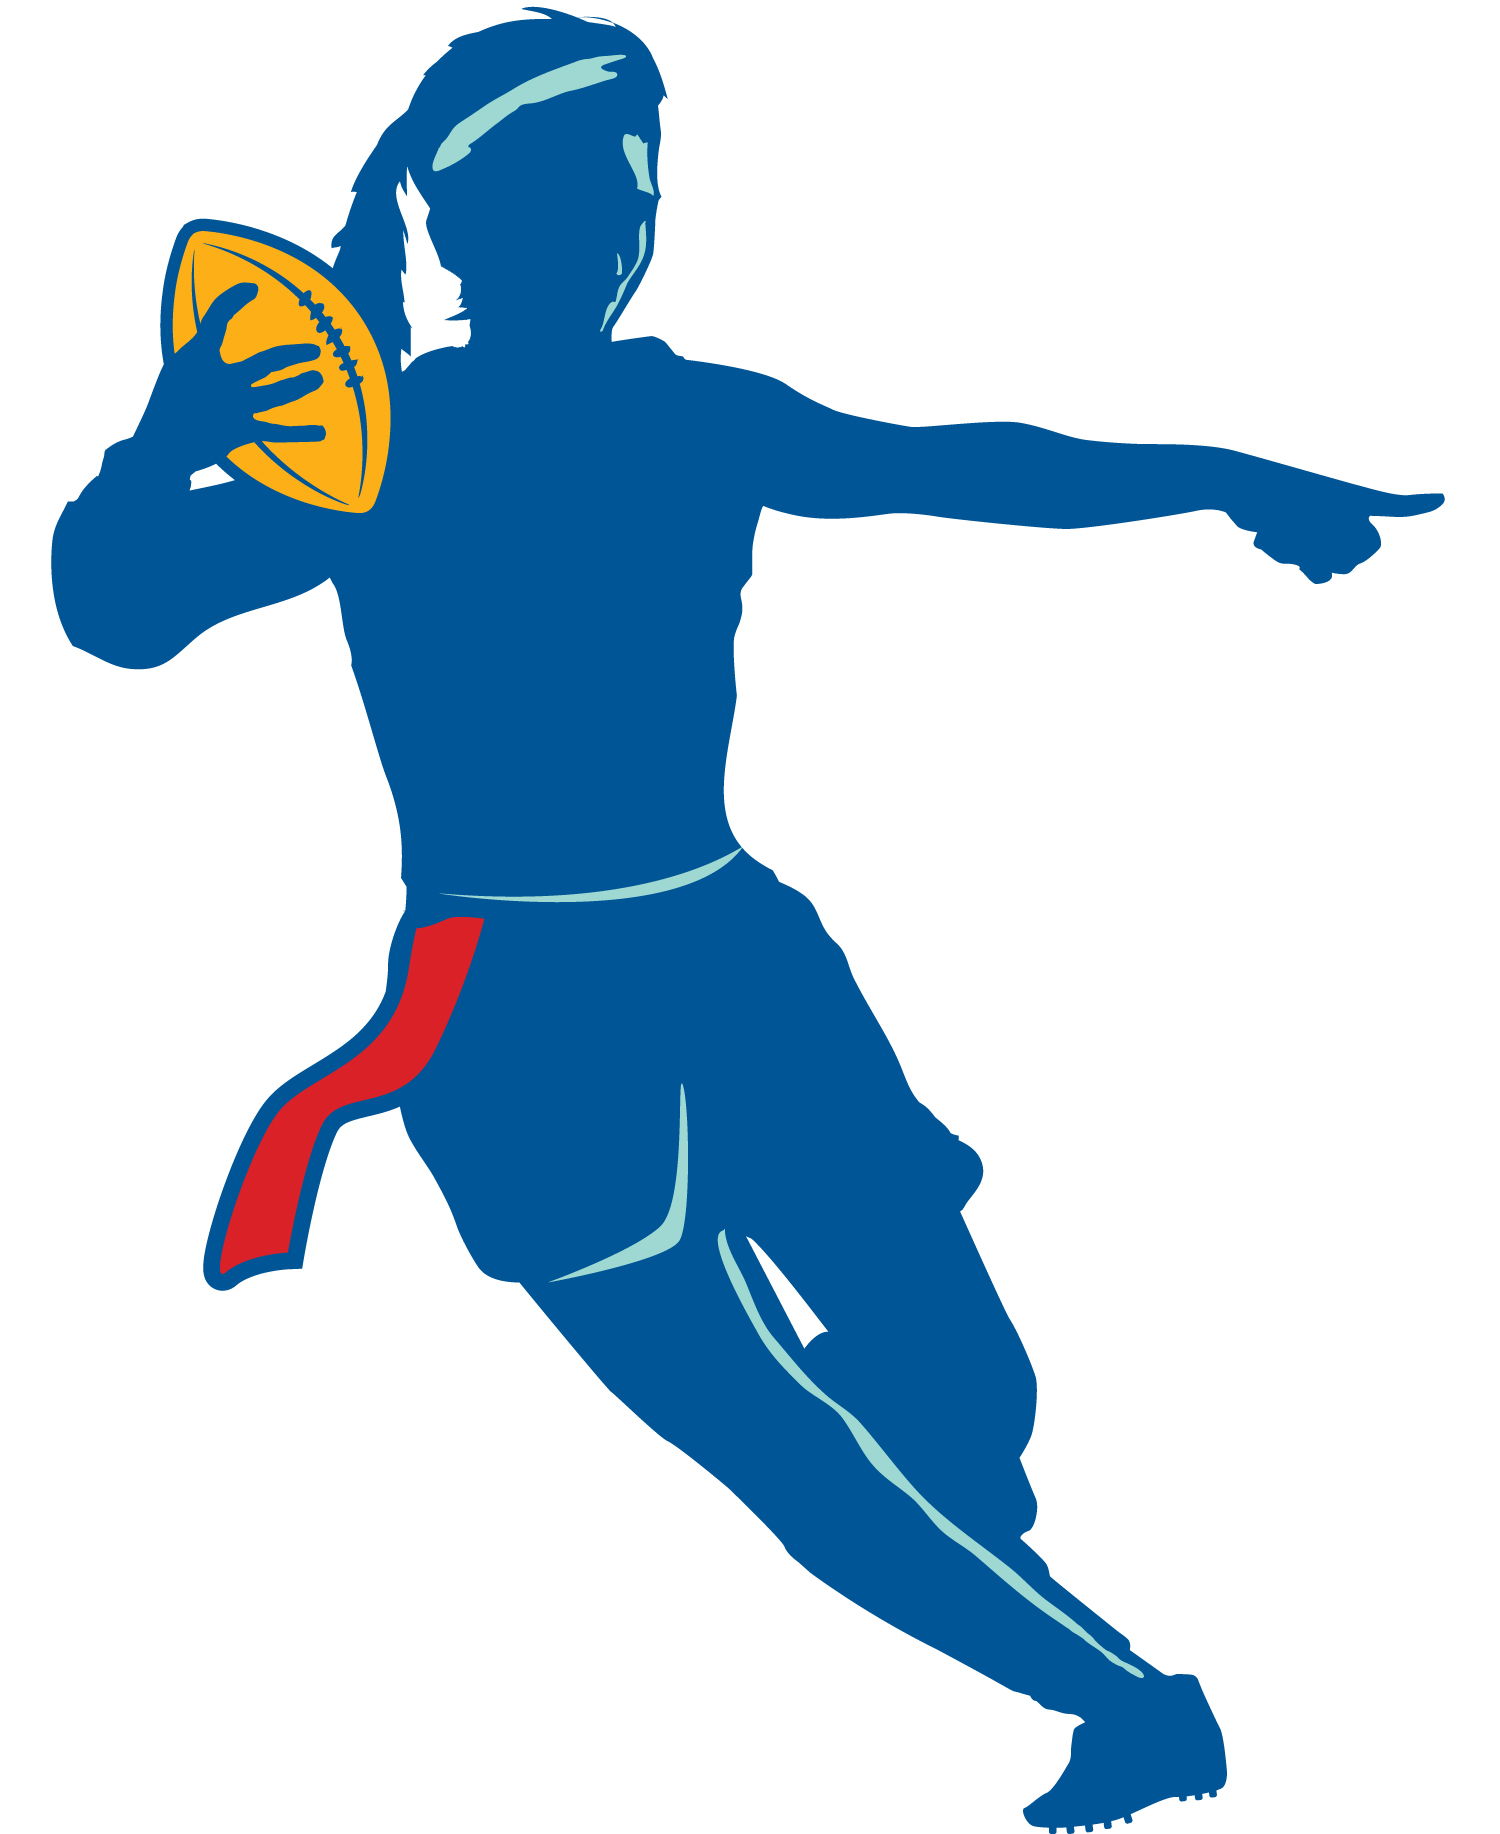 Flag Football Clip Art 13 flag football clipart.